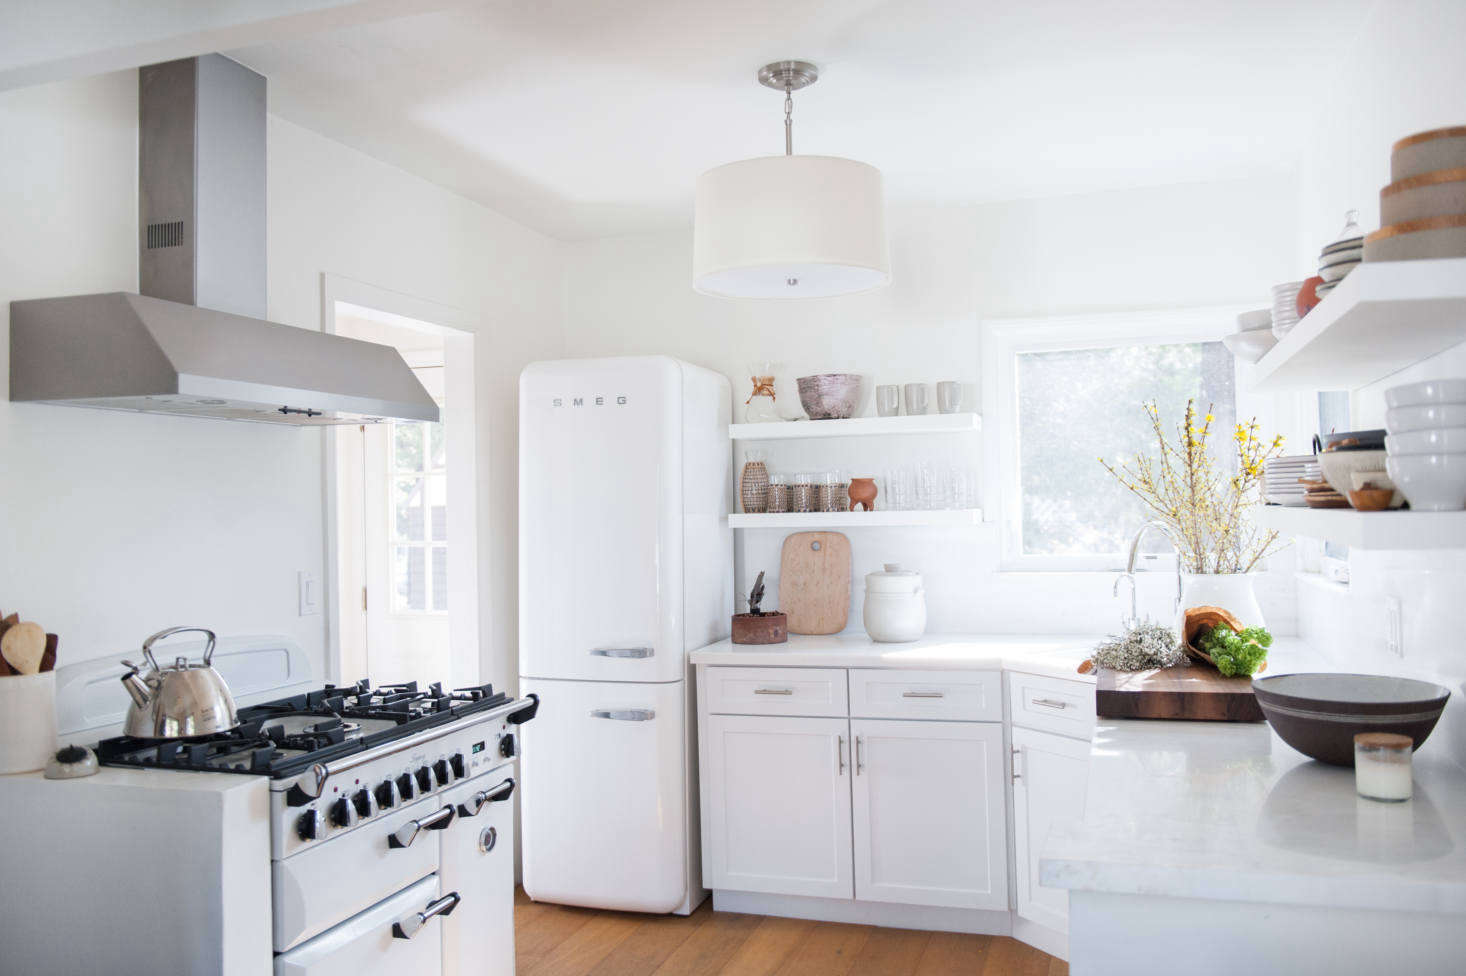 """""""Michael and I both grew up in England, which explains our appliance choices,"""" Leanne tells us. The fridge is a Smeg—""""it has an old-fashioned look that we love""""—and the range is an Aga."""